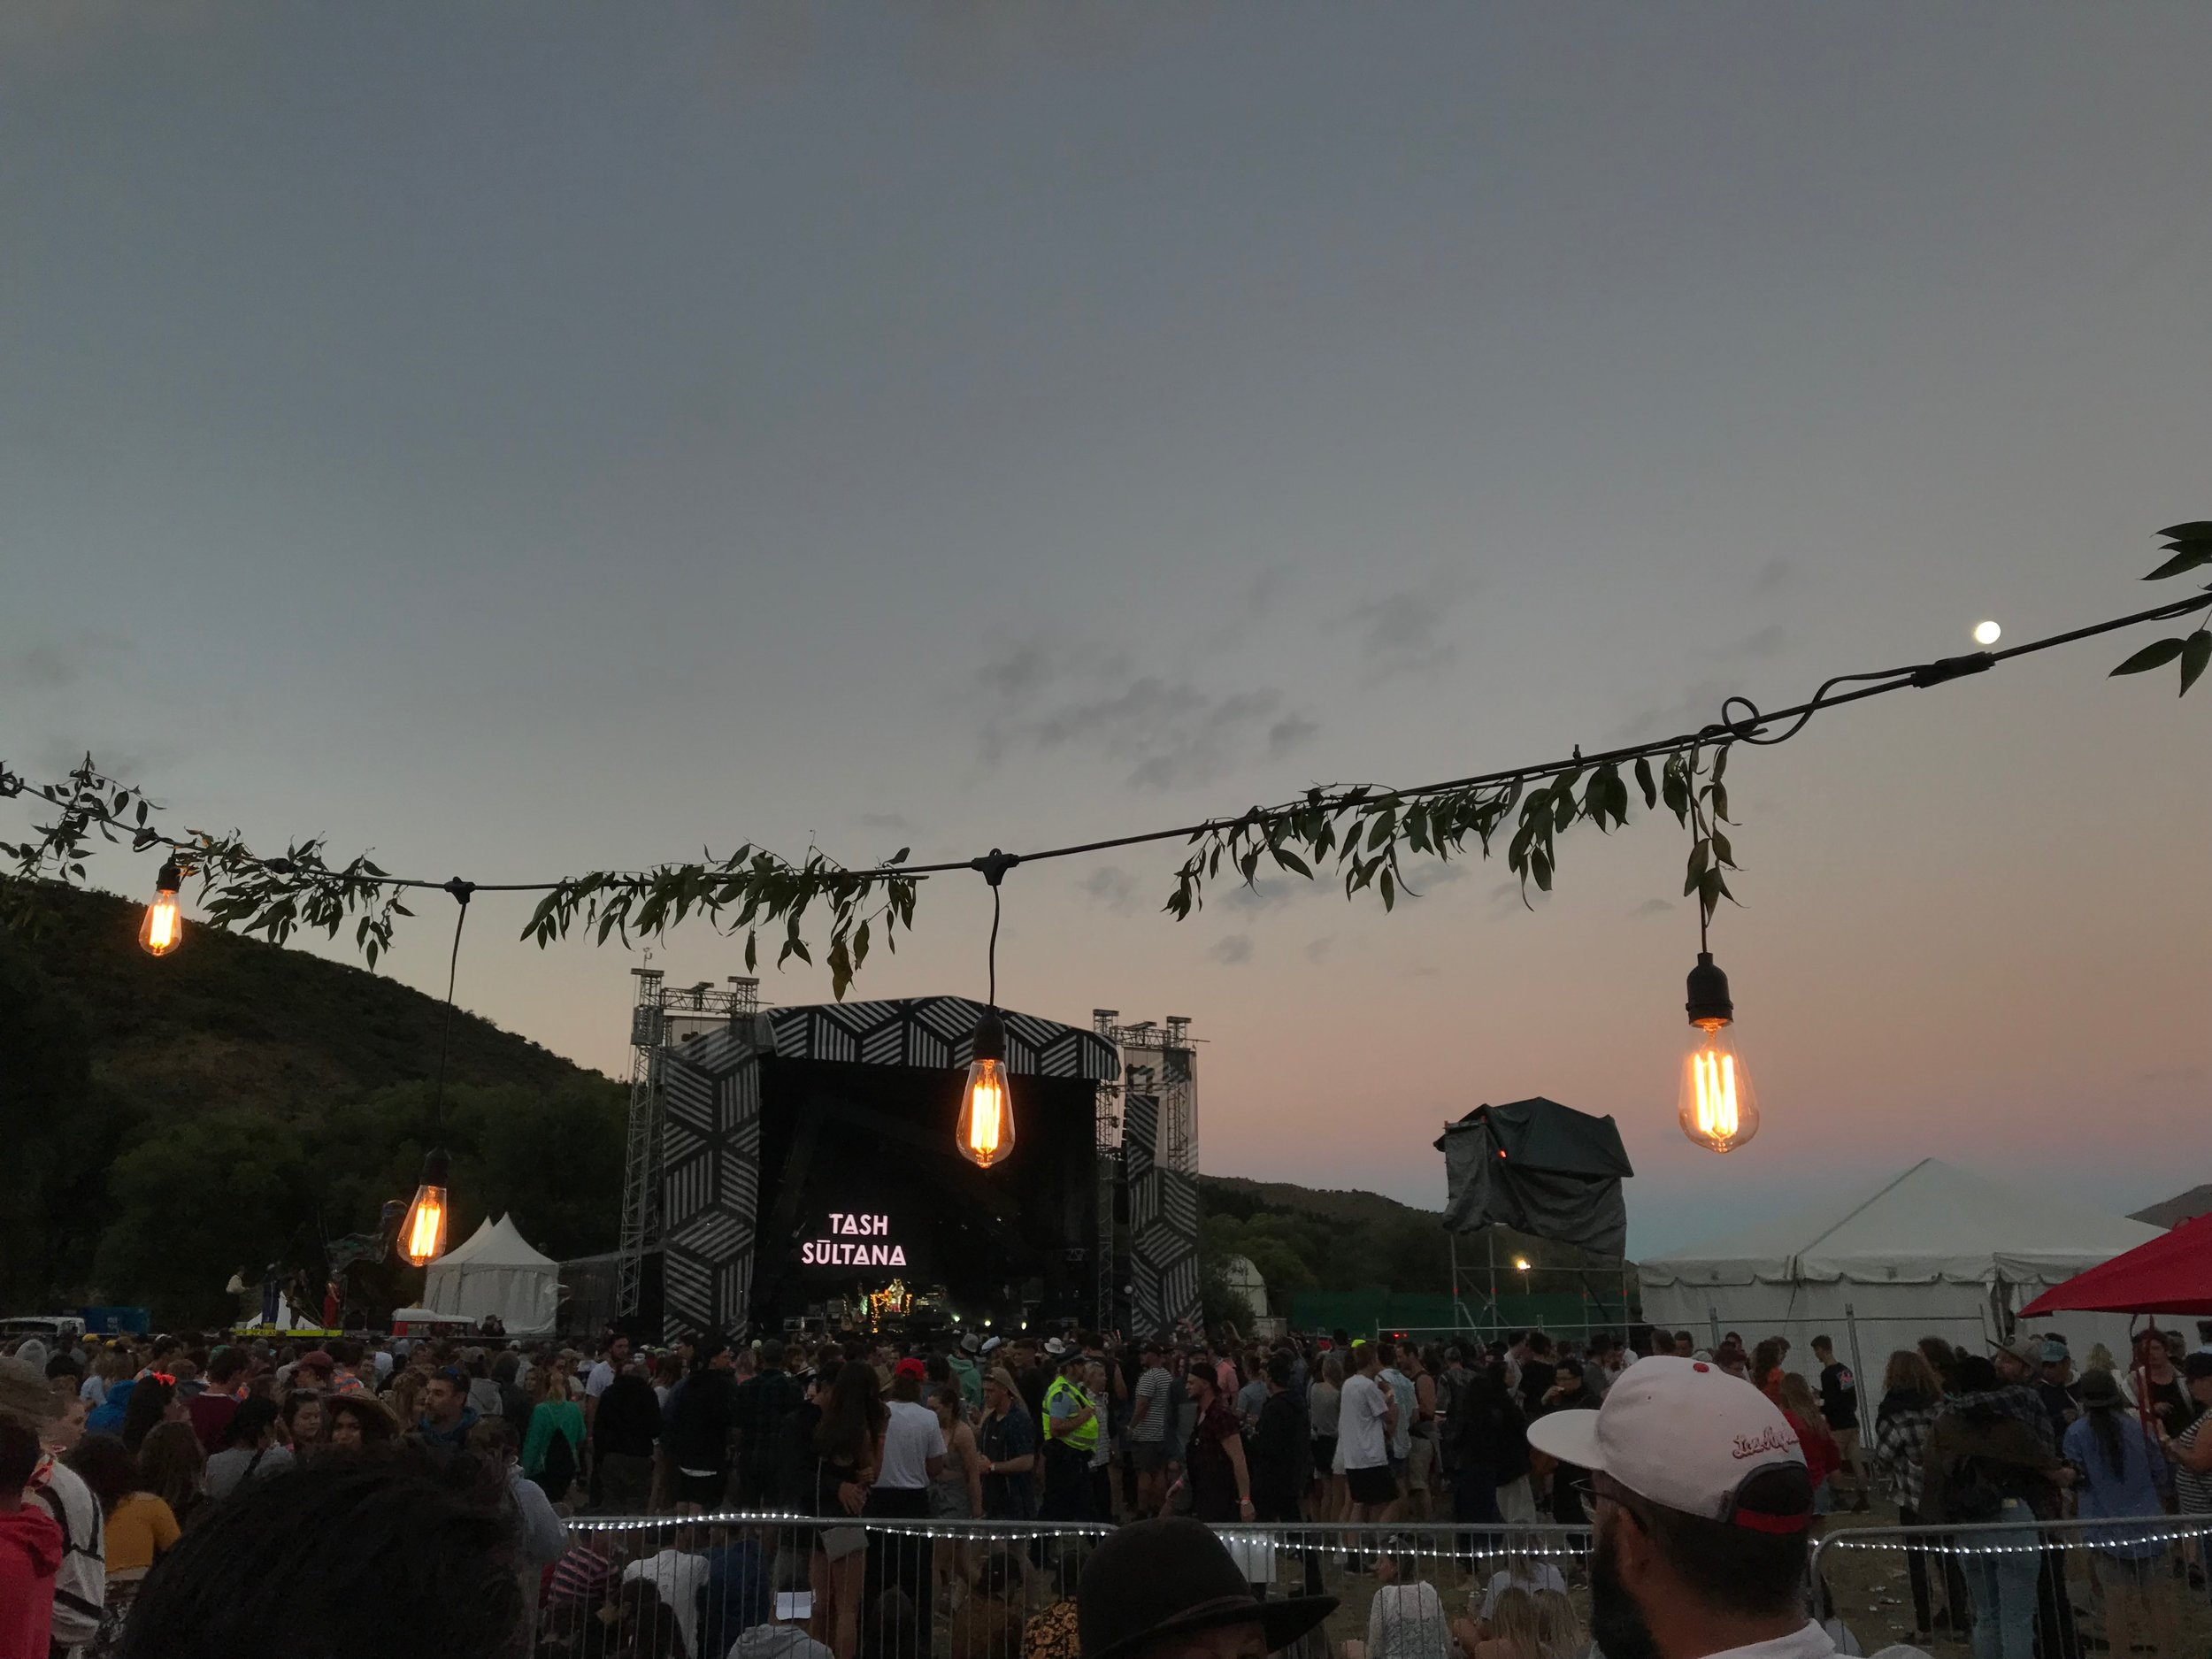 Festoons and foliage at Rhythm and Alps